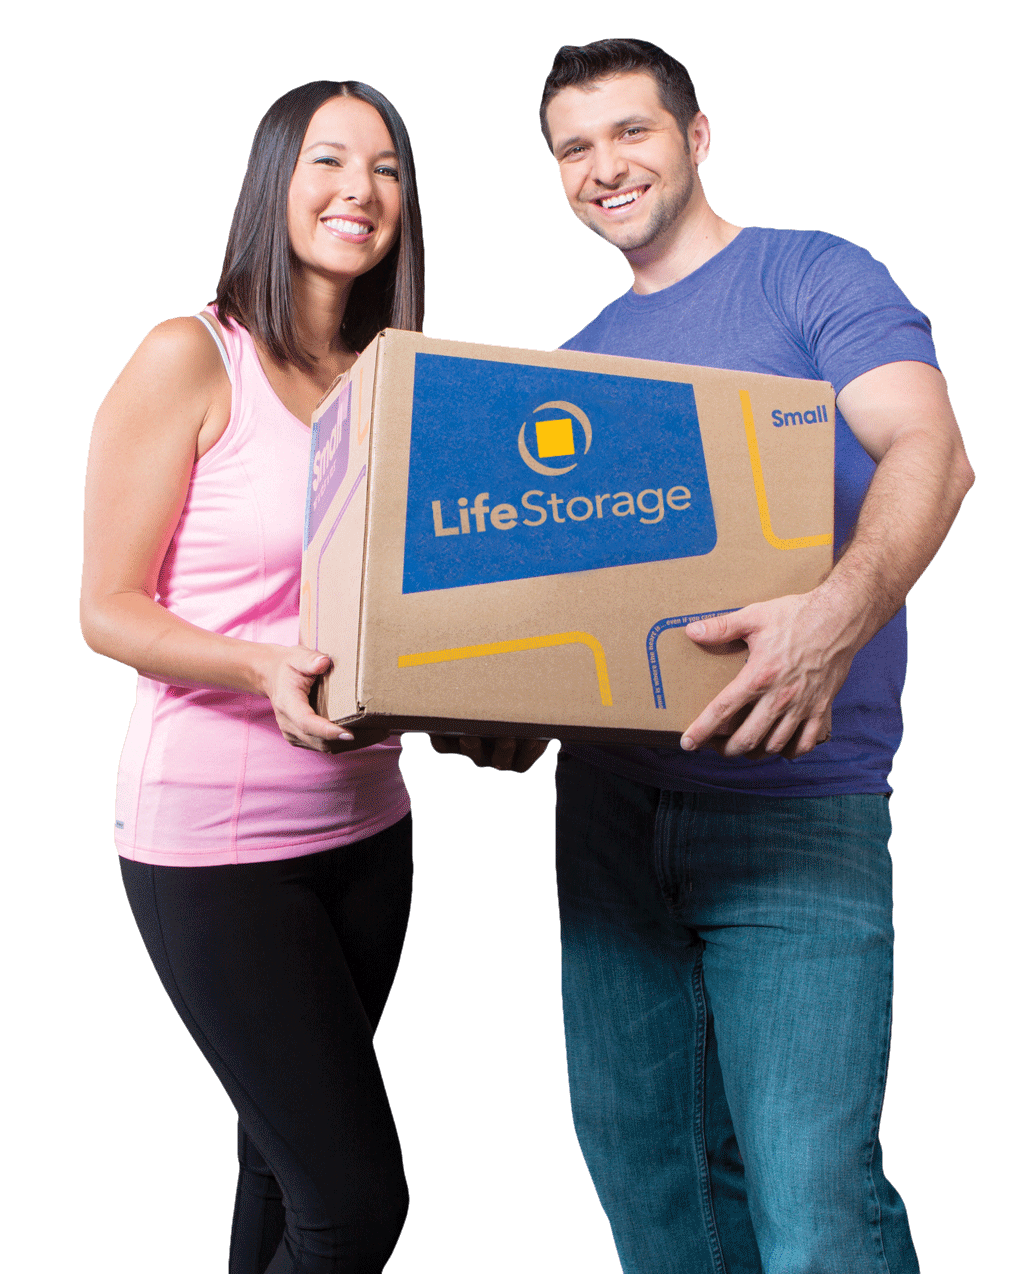 Life Storage customers